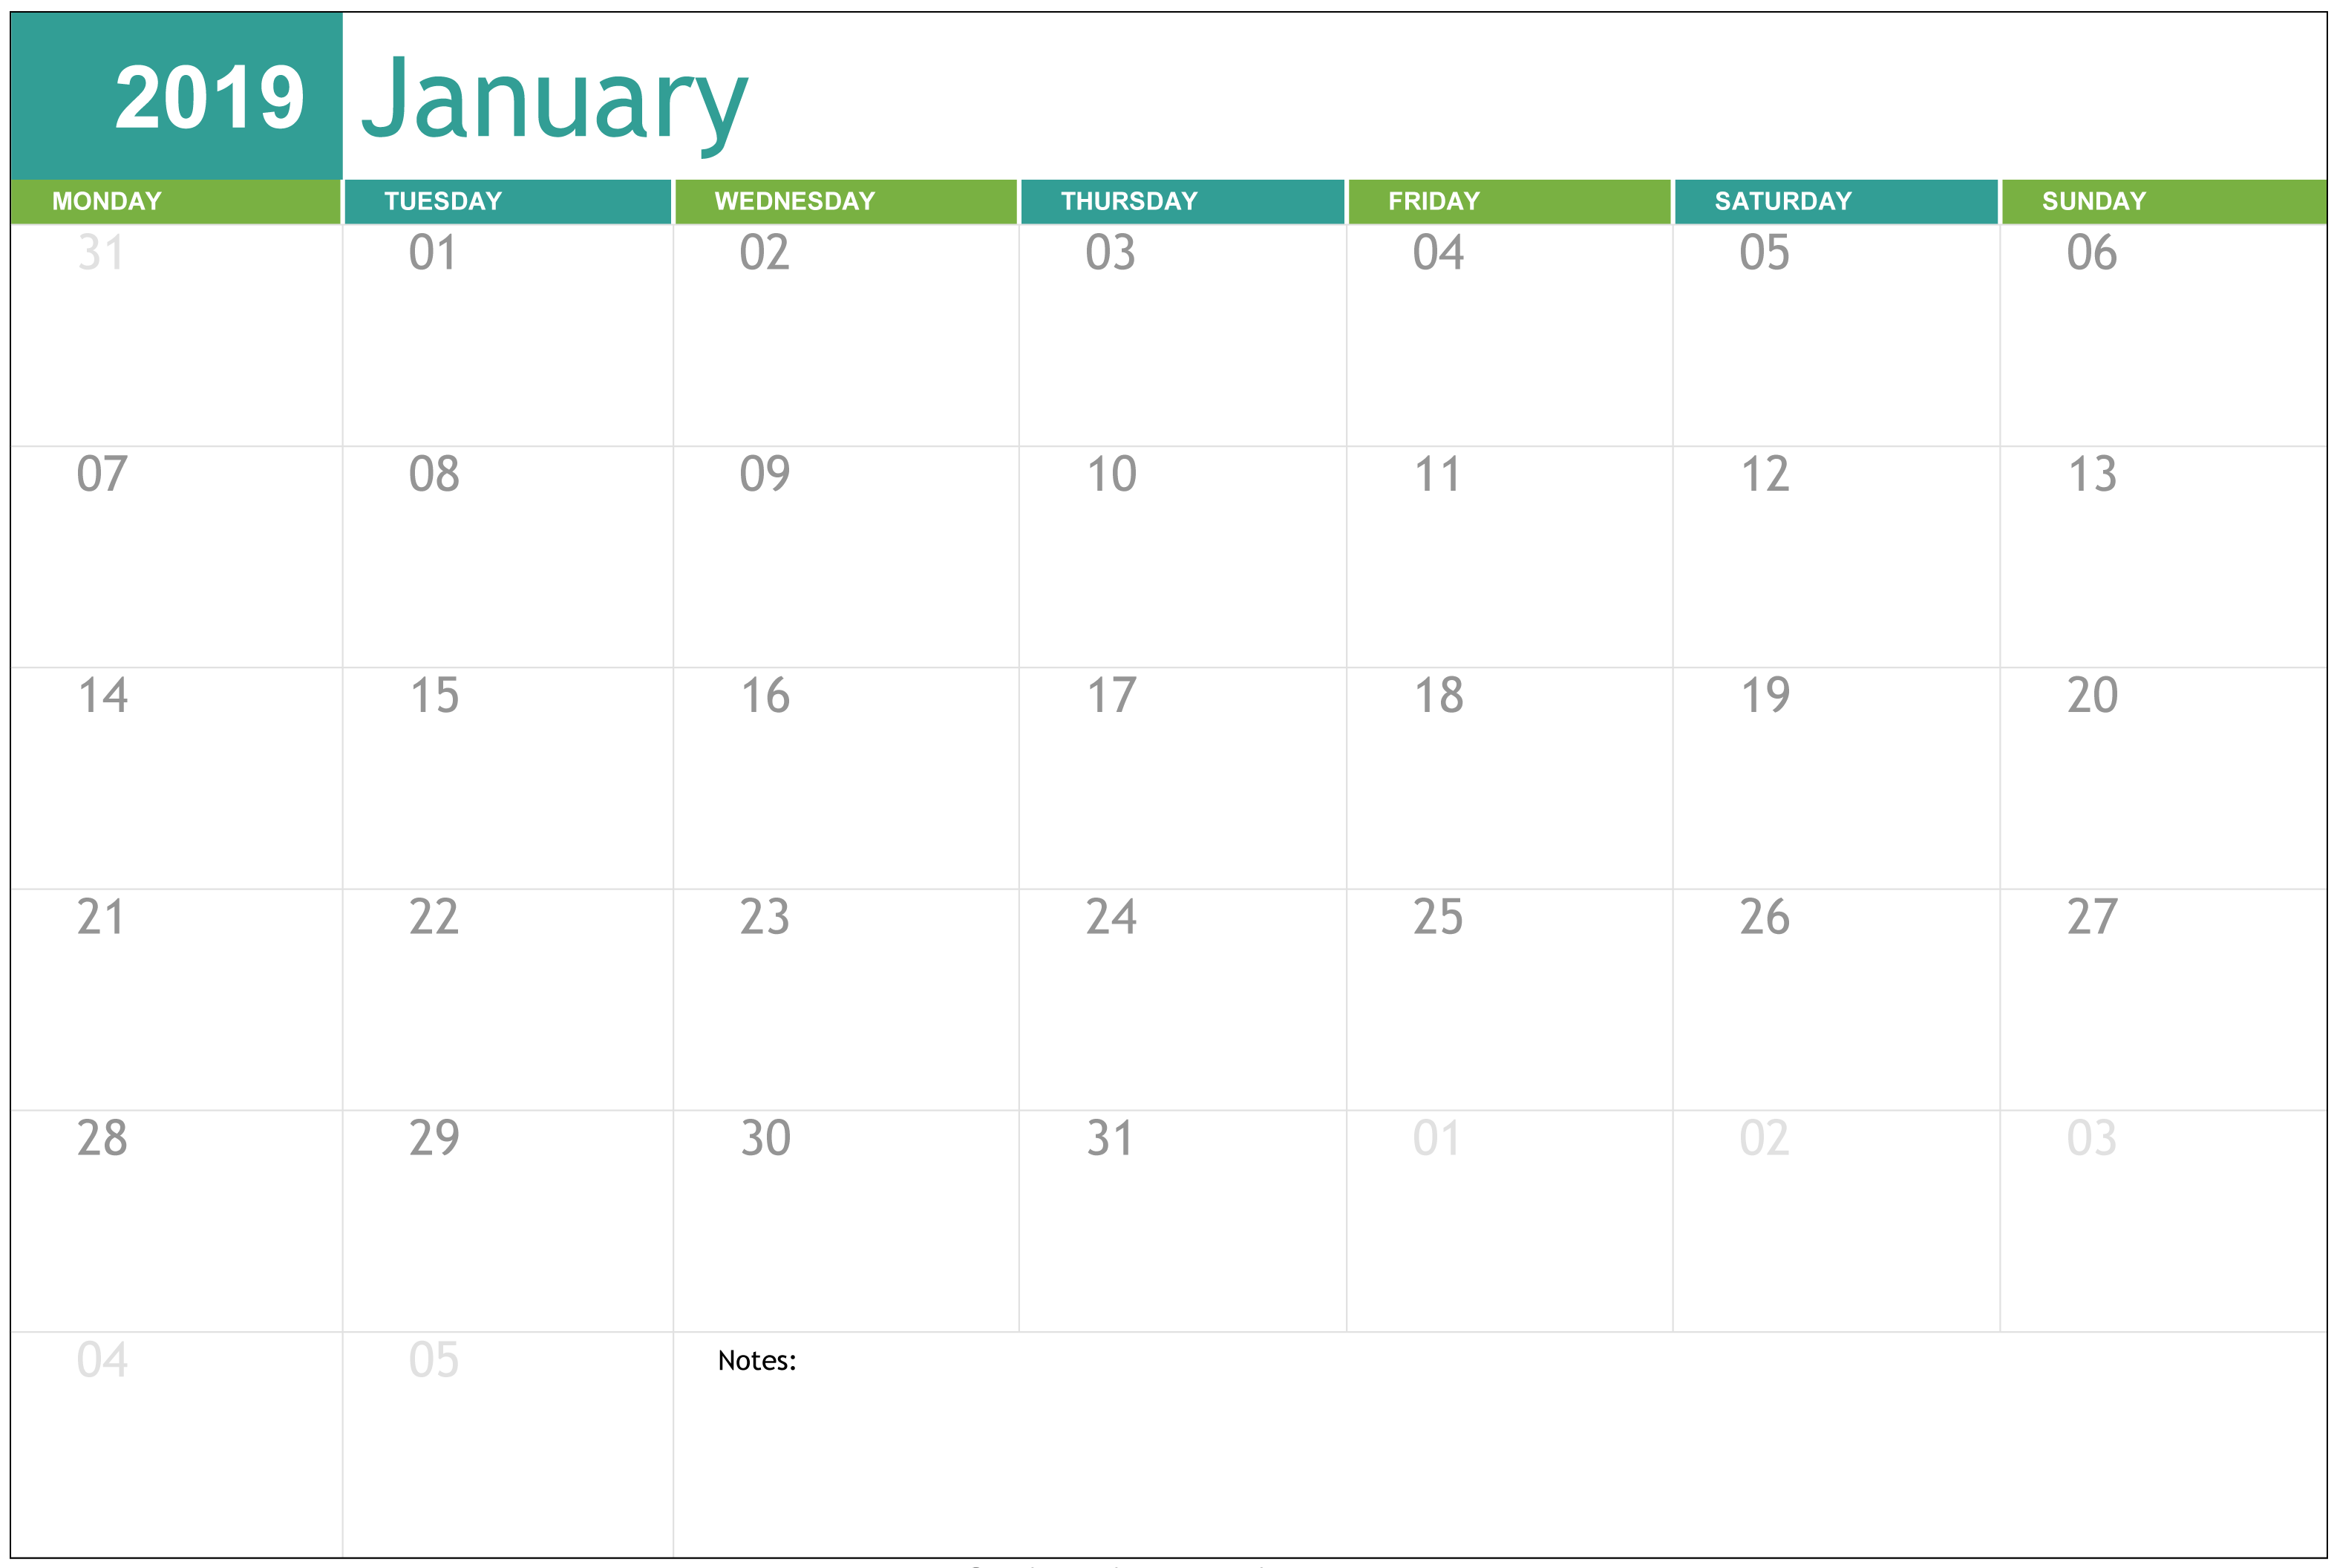 Monthly Calendar Template January 2019